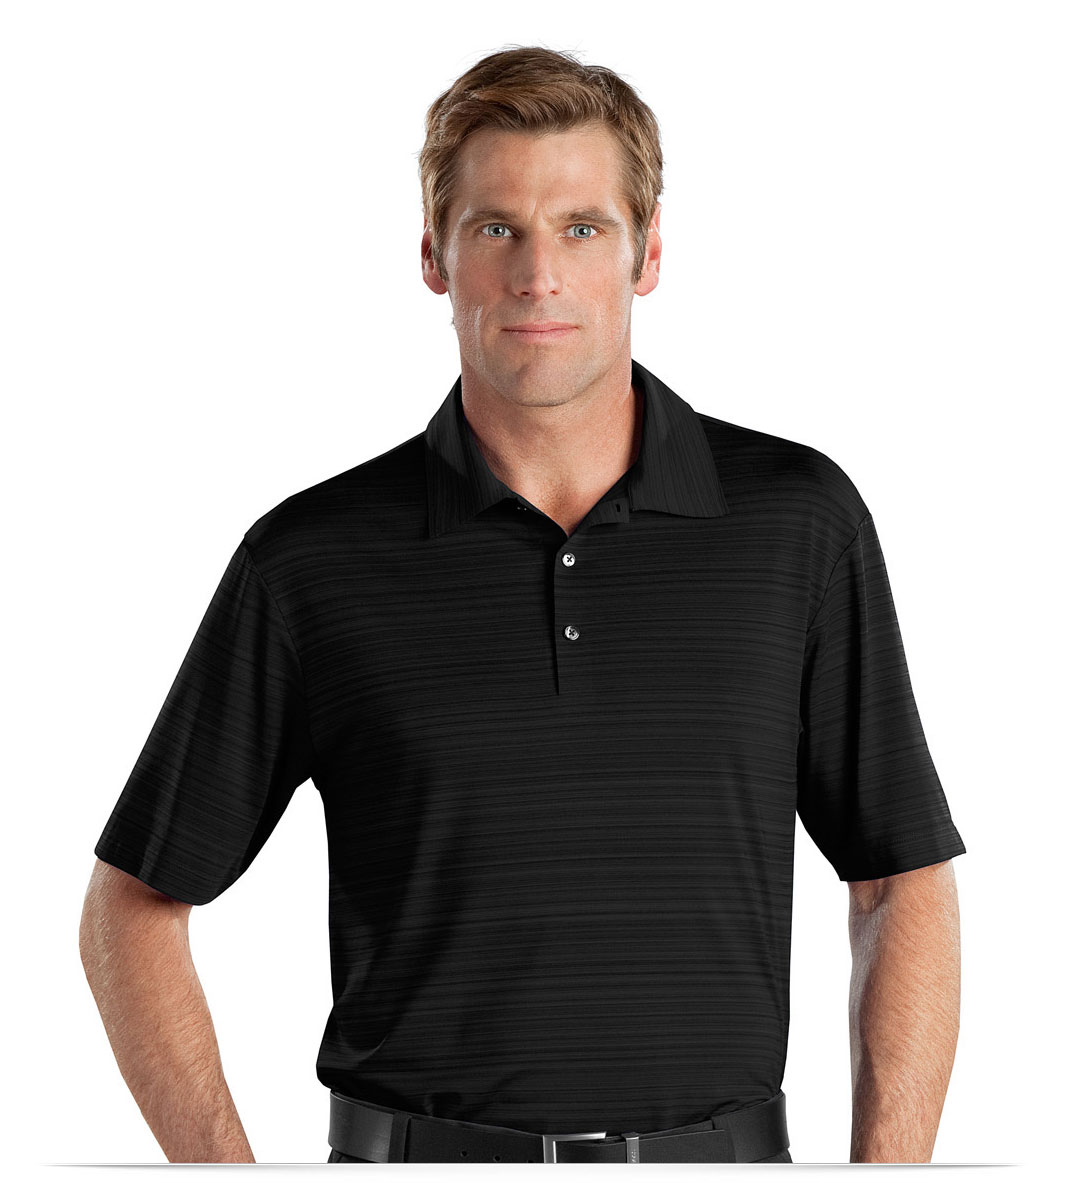 Customize Elite Series Dri-FIT Heather Fine Line Bonded Polo